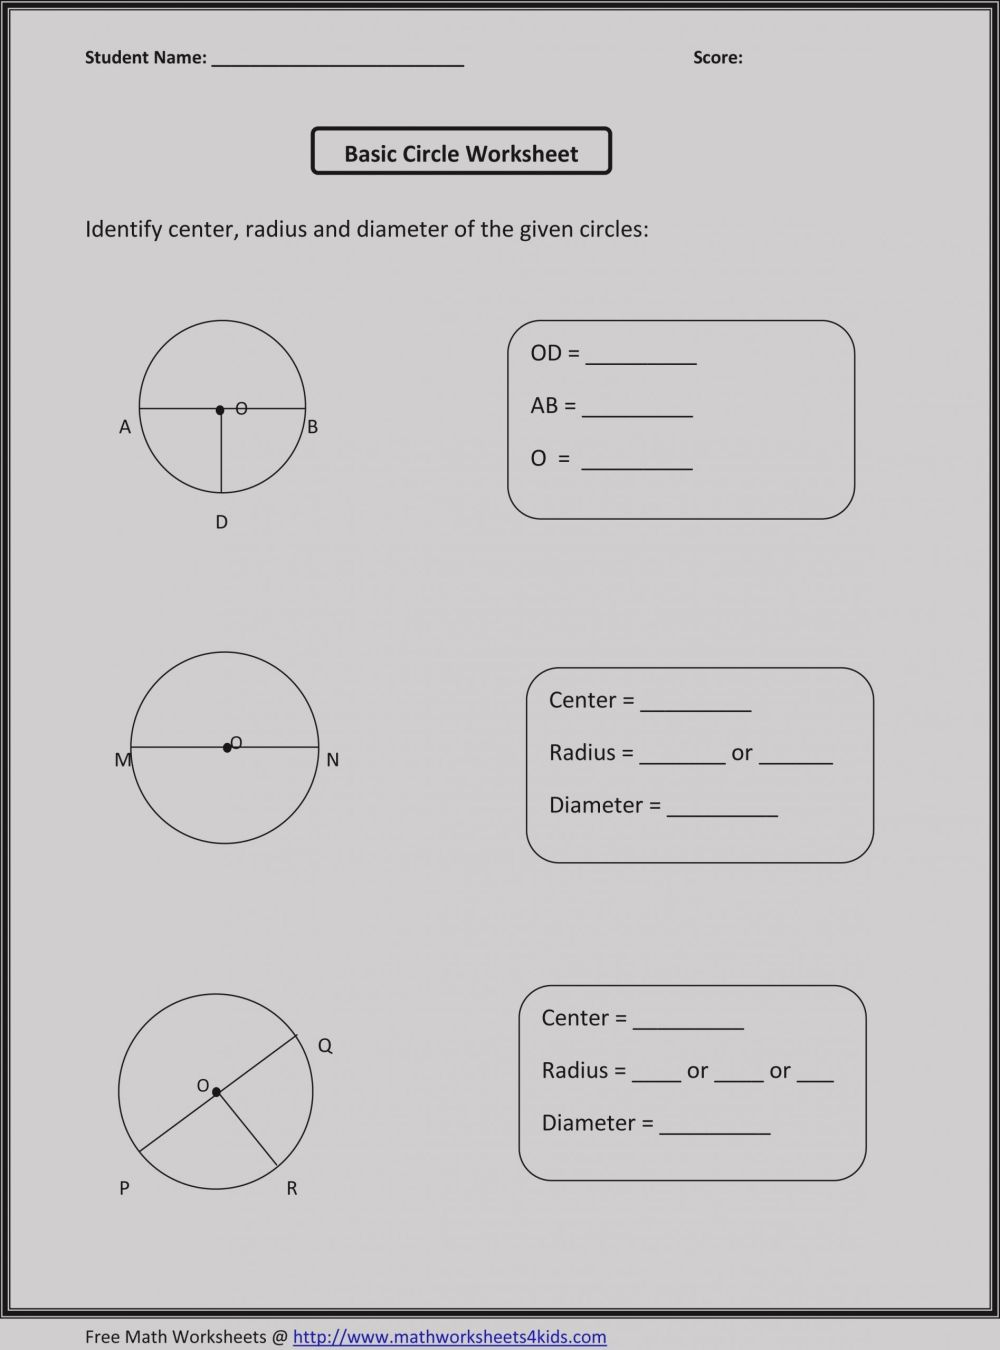 medium resolution of 4 Free Math Worksheets Second Grade 2 Multiplication Multiply 2 Times whole  Tens - apocalomegaproductions.com